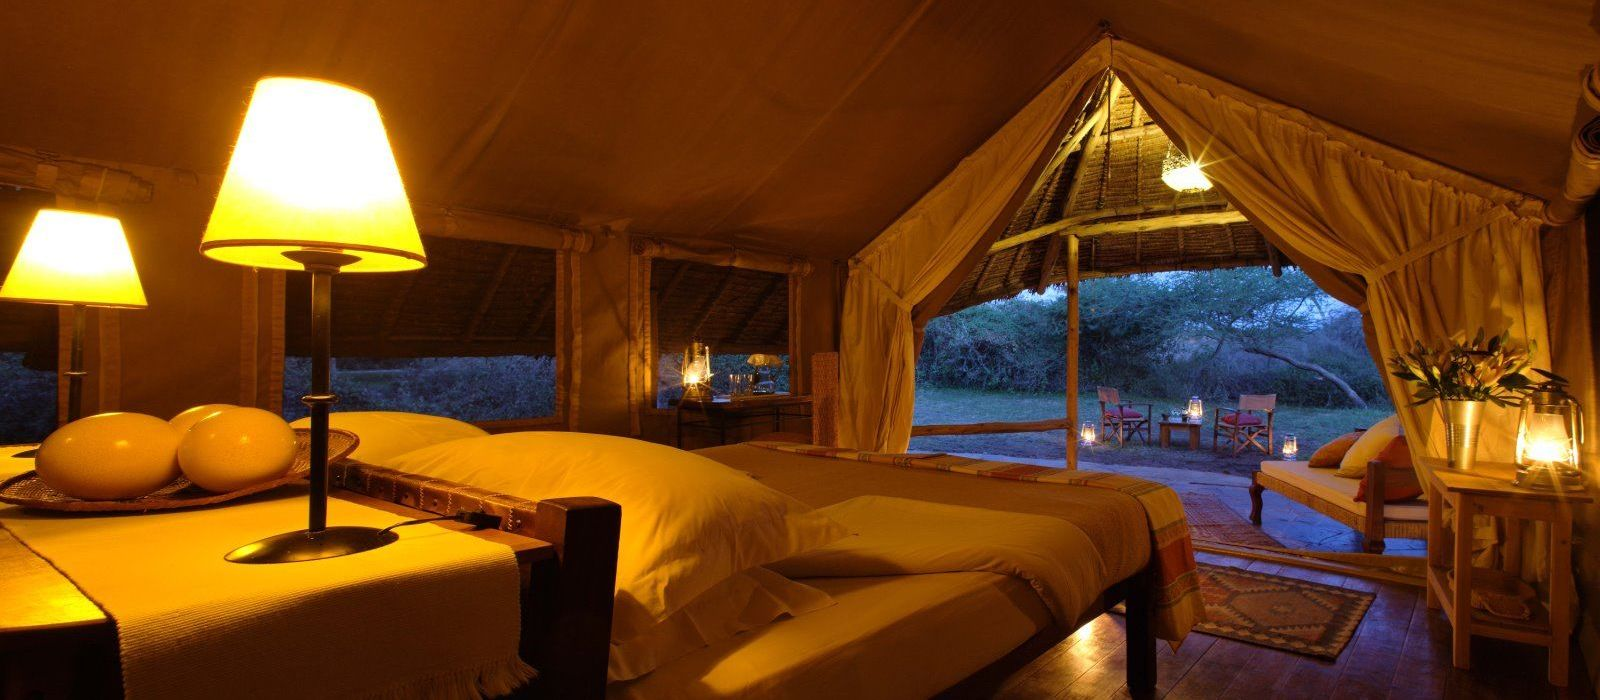 Hotel Tortilis Camp Kenia